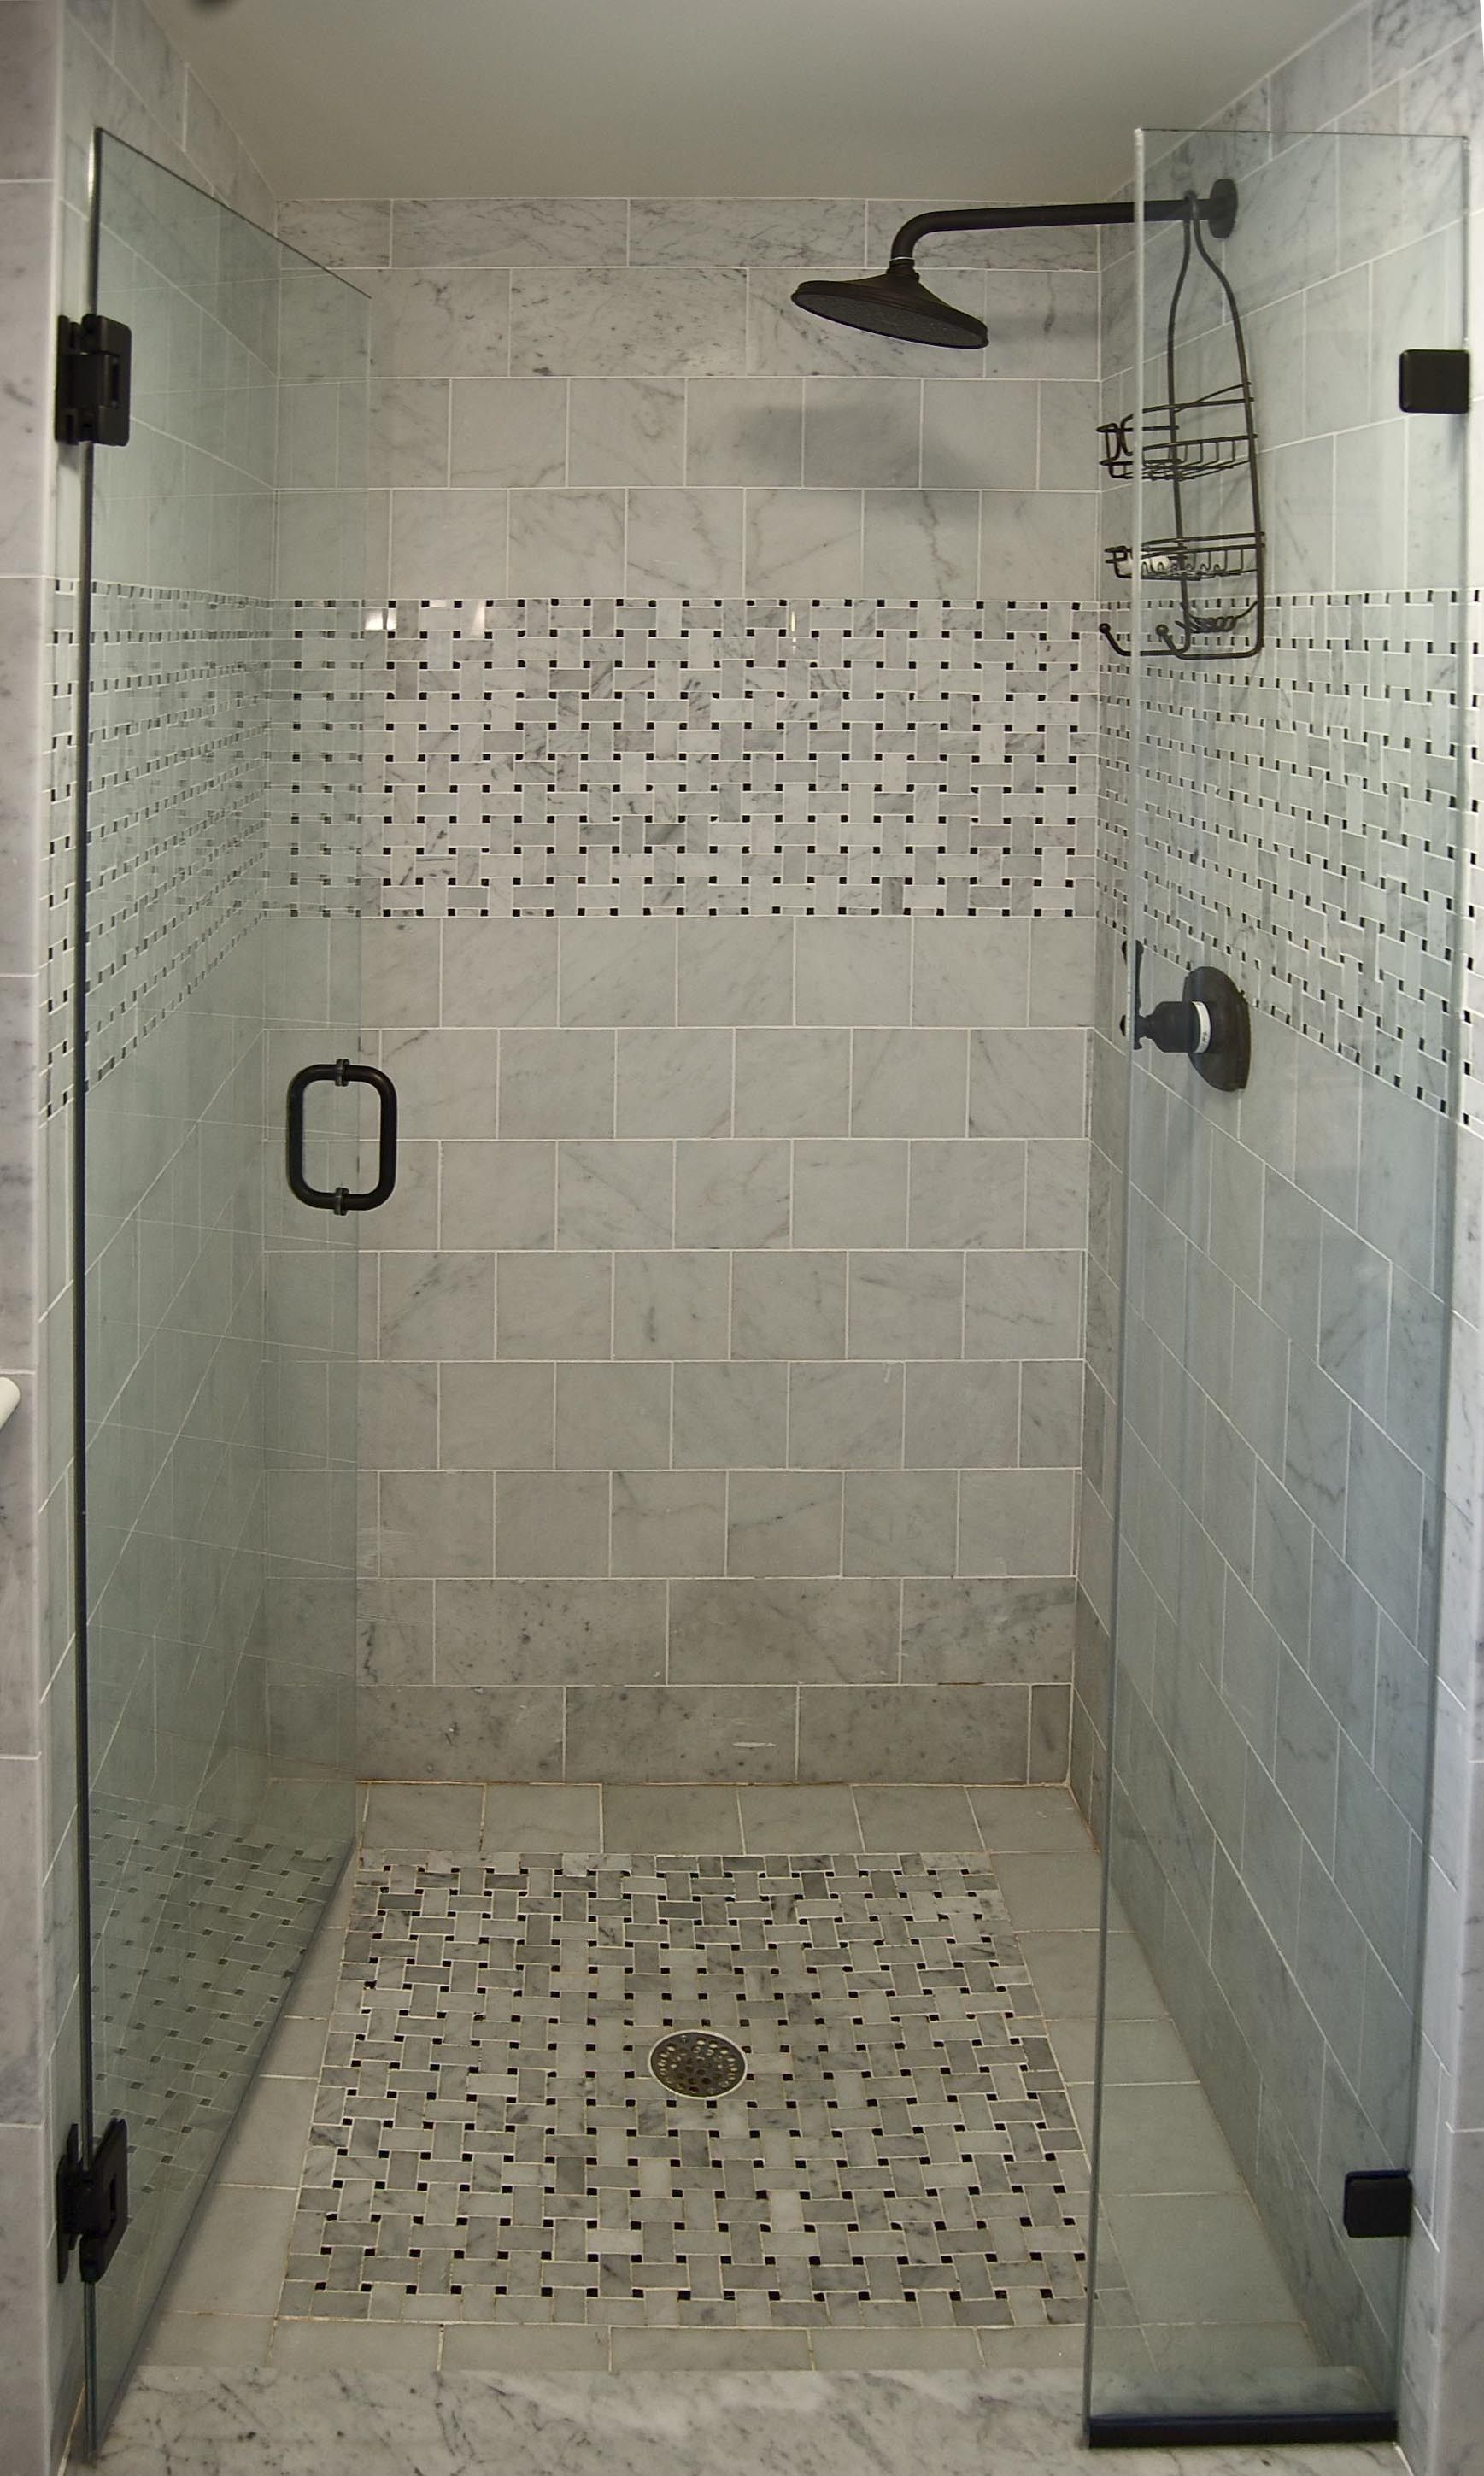 30 Shower Tile Ideas On A Budget 2019 In 2020 Bathroom Shower Stalls Bathroom Shower Tile Bathroom Remodel Shower